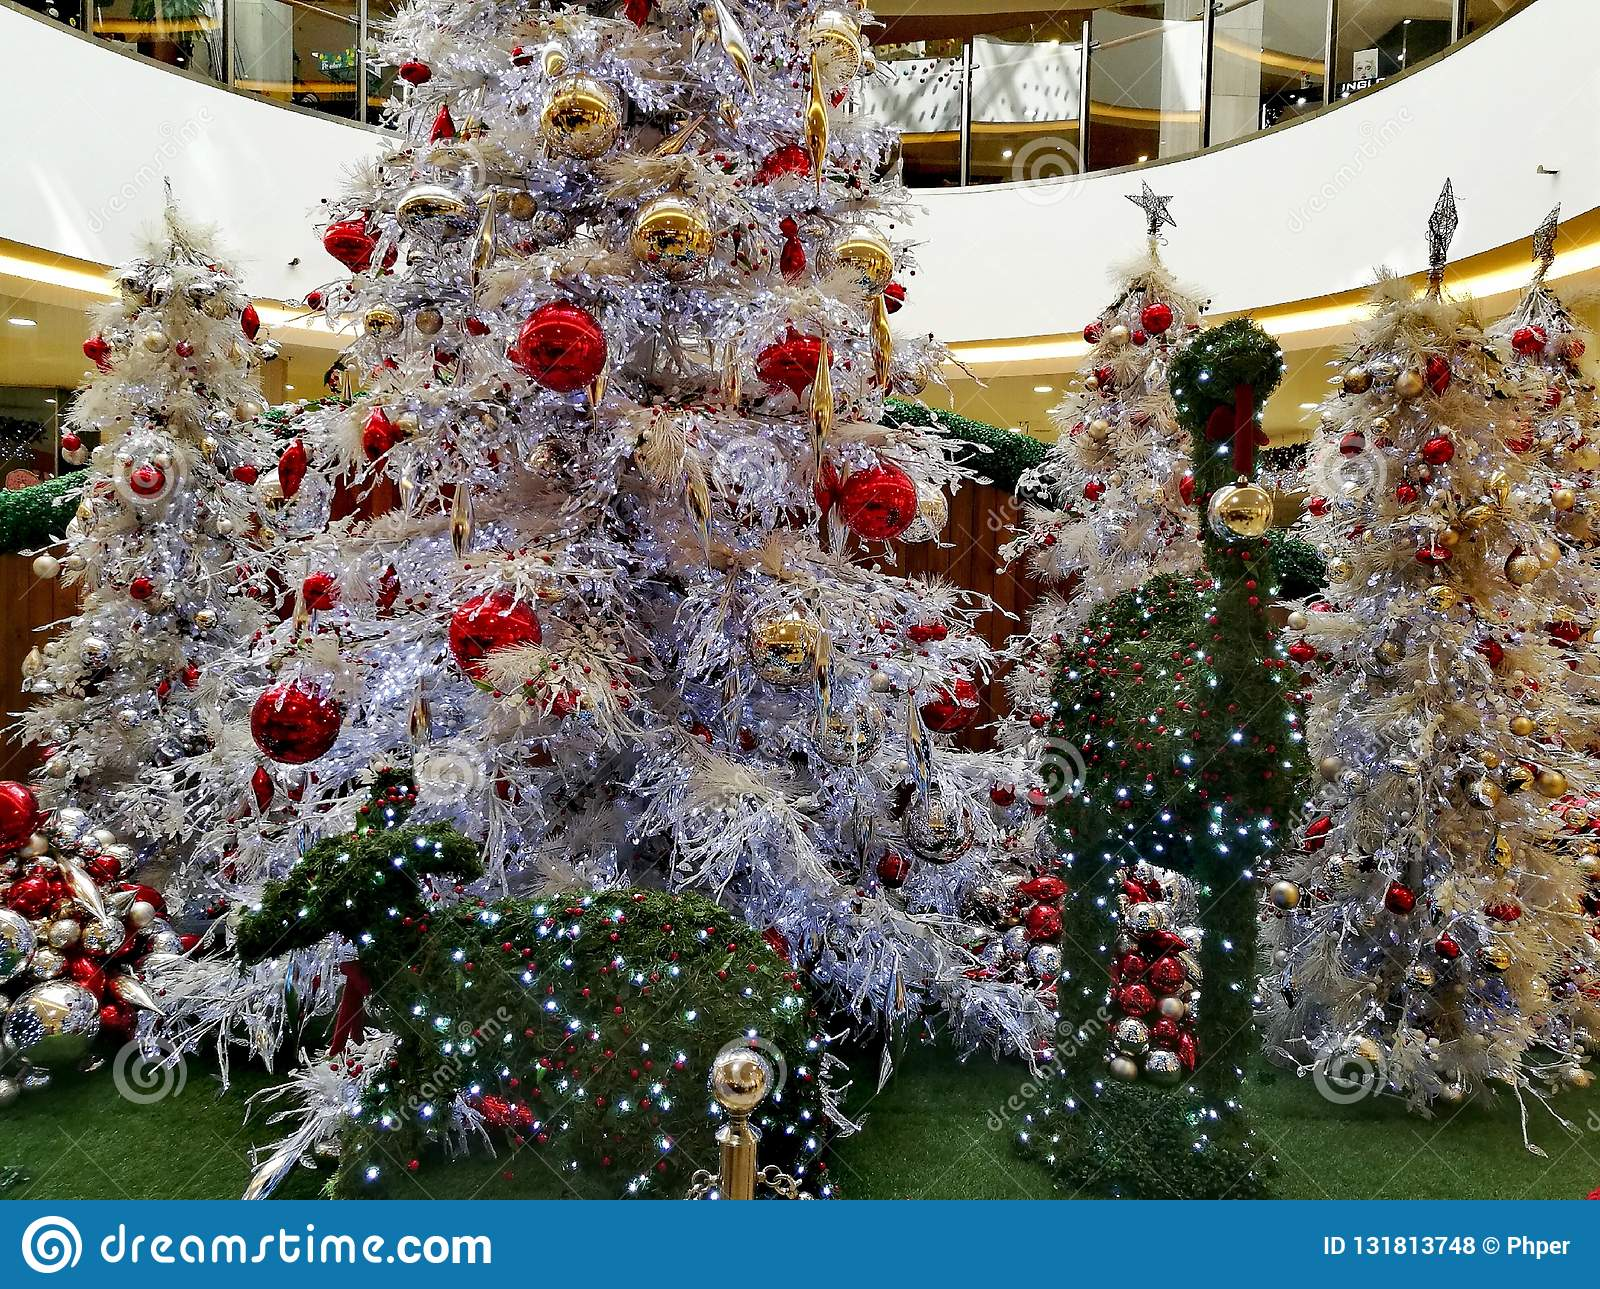 Australian Christmas Tree Decorations.Christmas Trees And Decorations Stock Photo Image Of